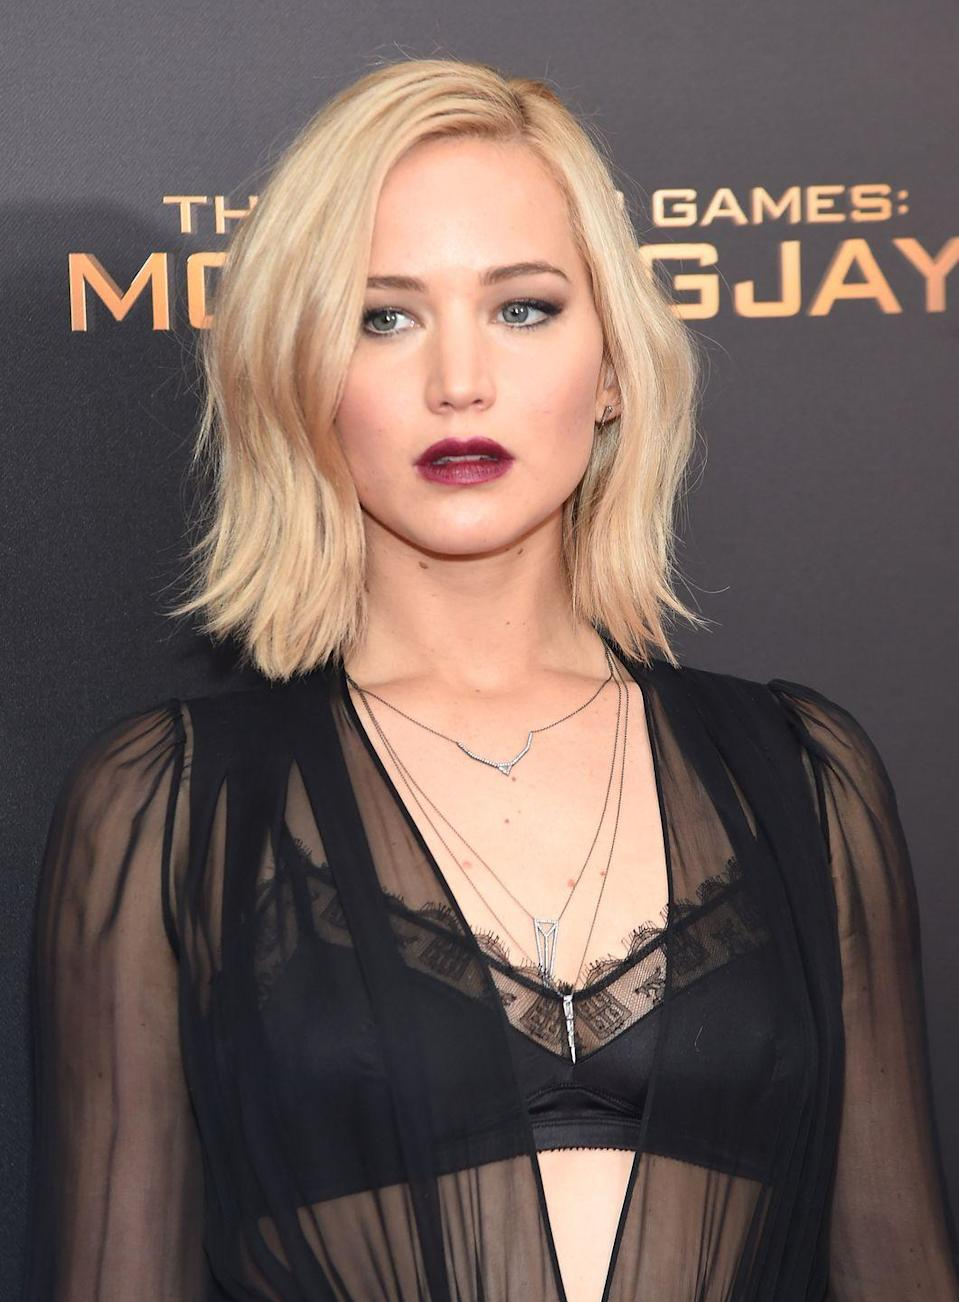 "<p>Lawrence's first reaction to seeing the 2017 horror film wasn't the best. Lawrence told <em><a href=""http://variety.com/2017/scene/vpage/mother-jennifer-lawrence-1202558854/"" rel=""nofollow noopener"" target=""_blank"" data-ylk=""slk:Variety"" class=""link rapid-noclick-resp"">Variety</a></em>, ""I was really shaken. My first reaction [to seeing the film] was that we took it too far,"" said Lawrence. ""But then after the images died down a little bit, [the movie's] exactly what we're supposed to be doing and what we need to be doing. We have a message and if we watered it down to make people comfortable then what's the point? Why even make it?""</p>"